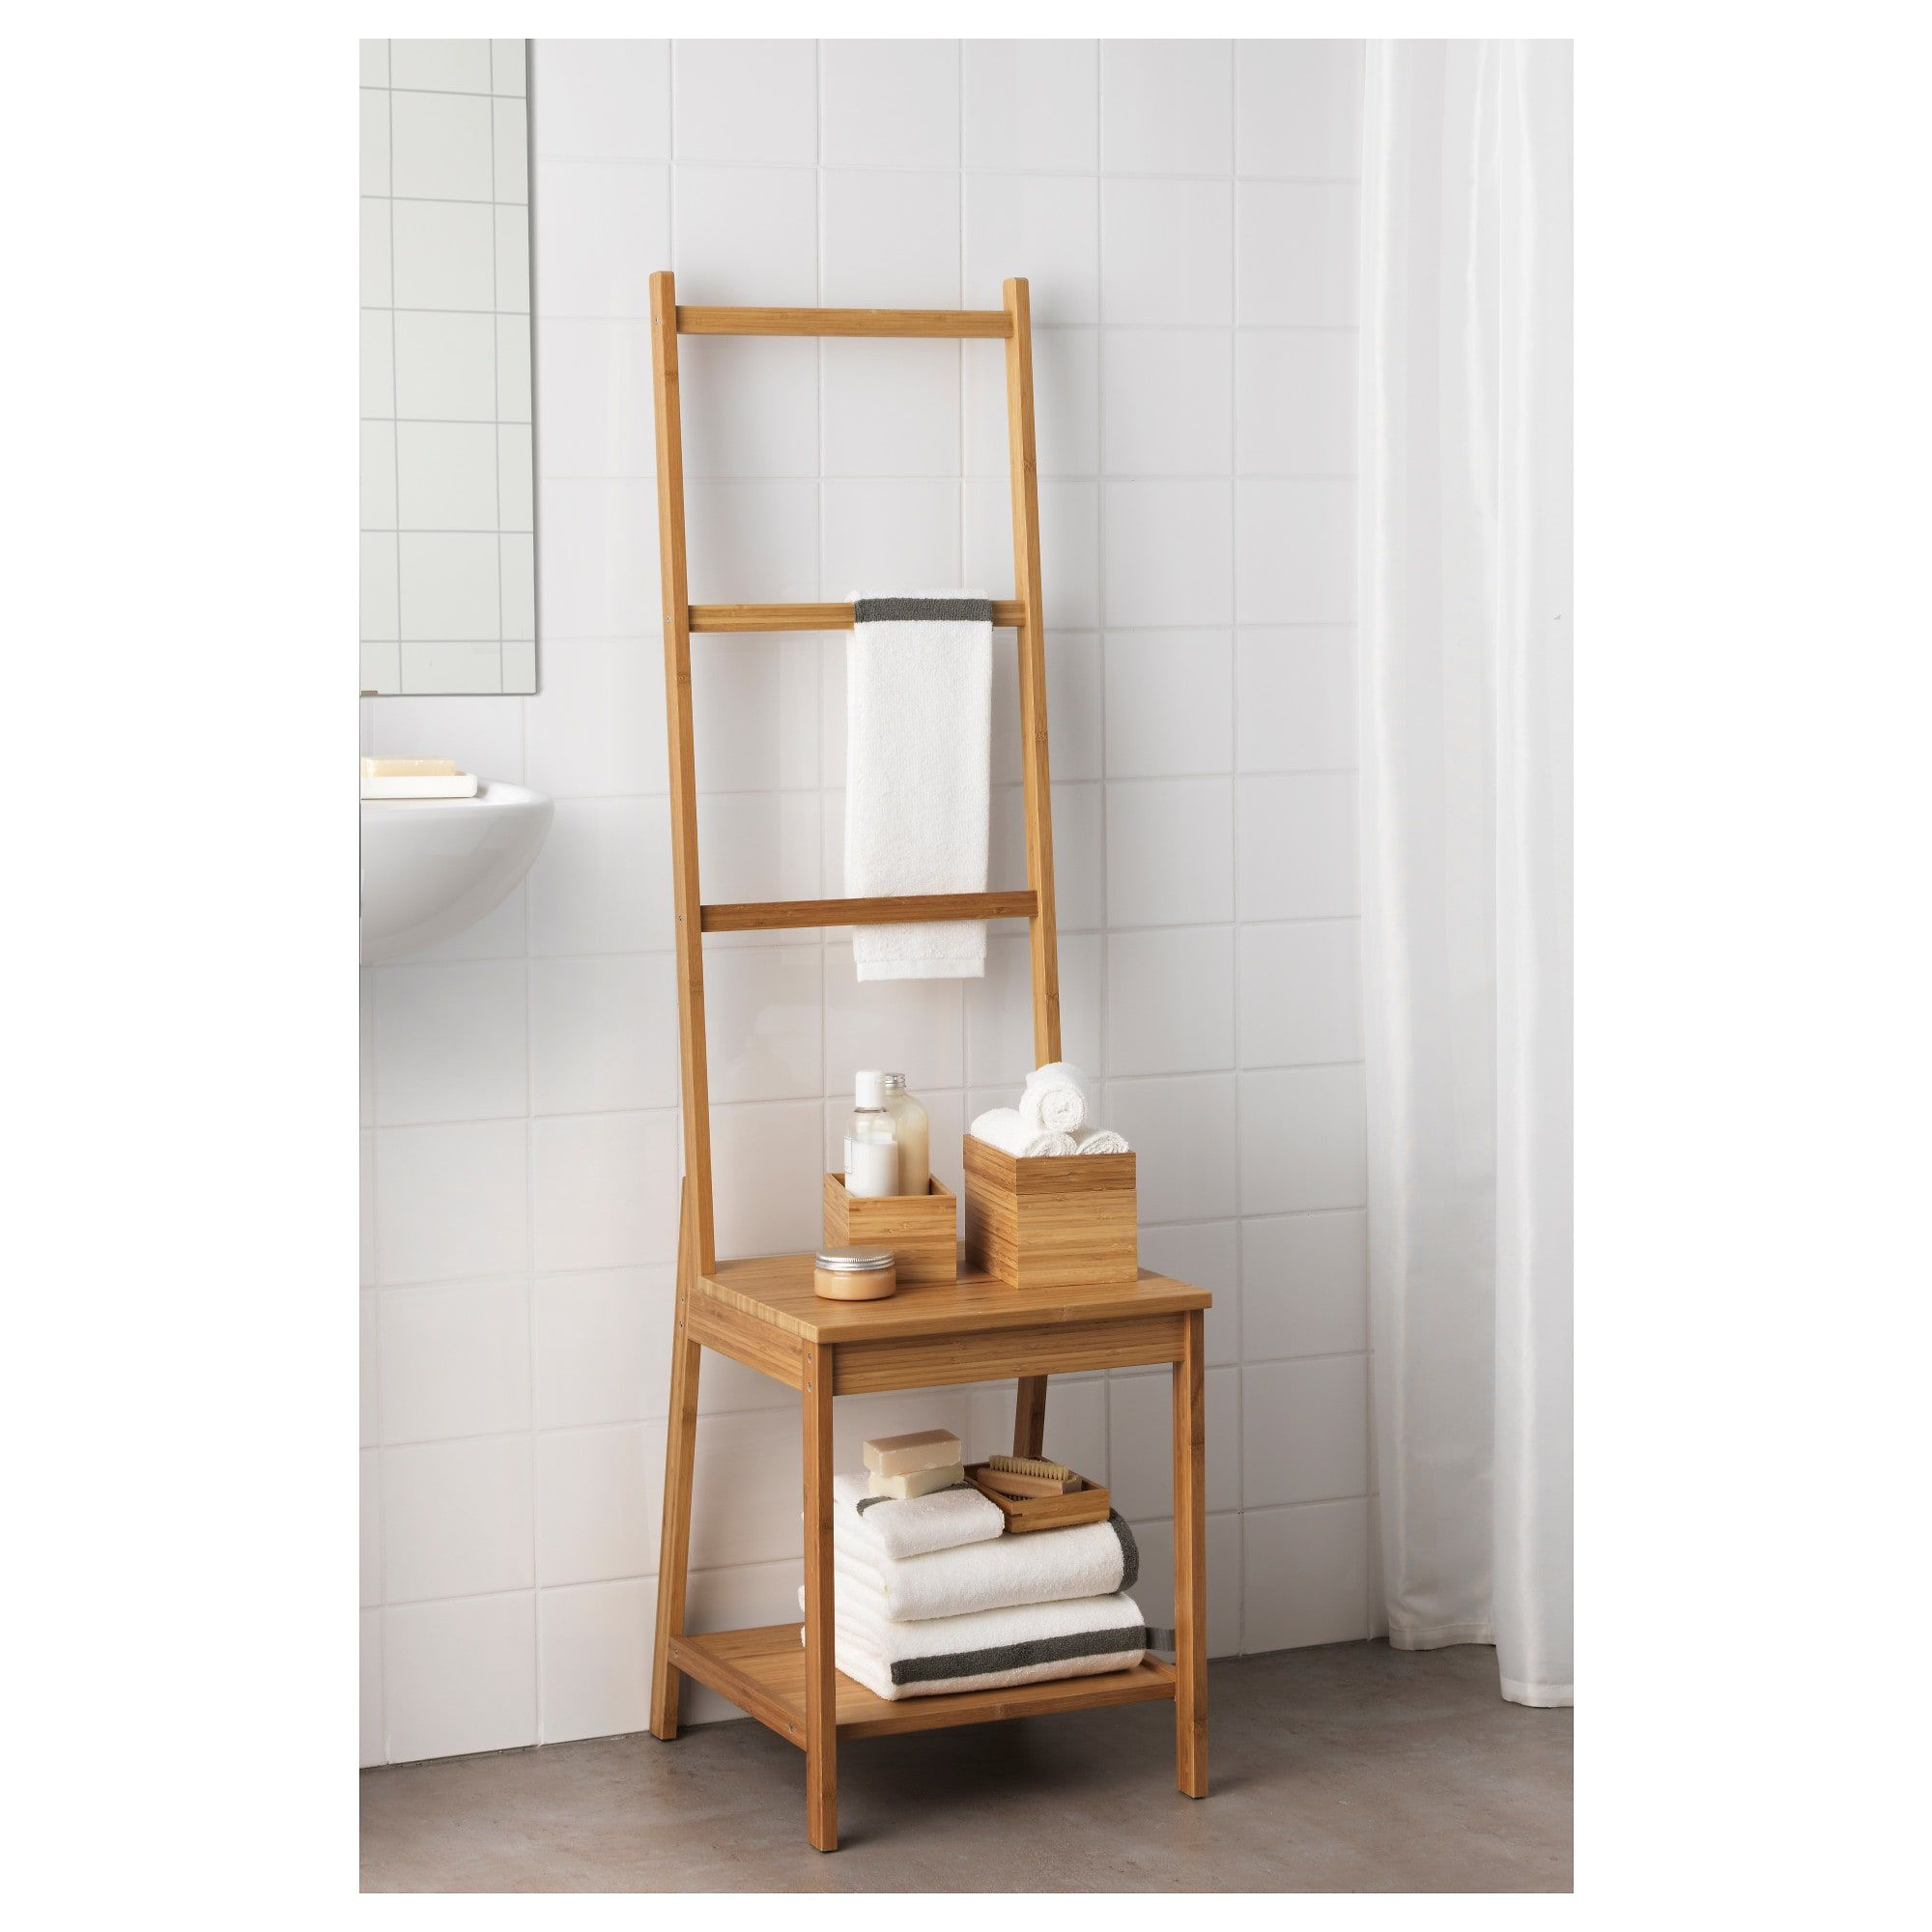 R Grund Chair With Towel Rack  Ikea